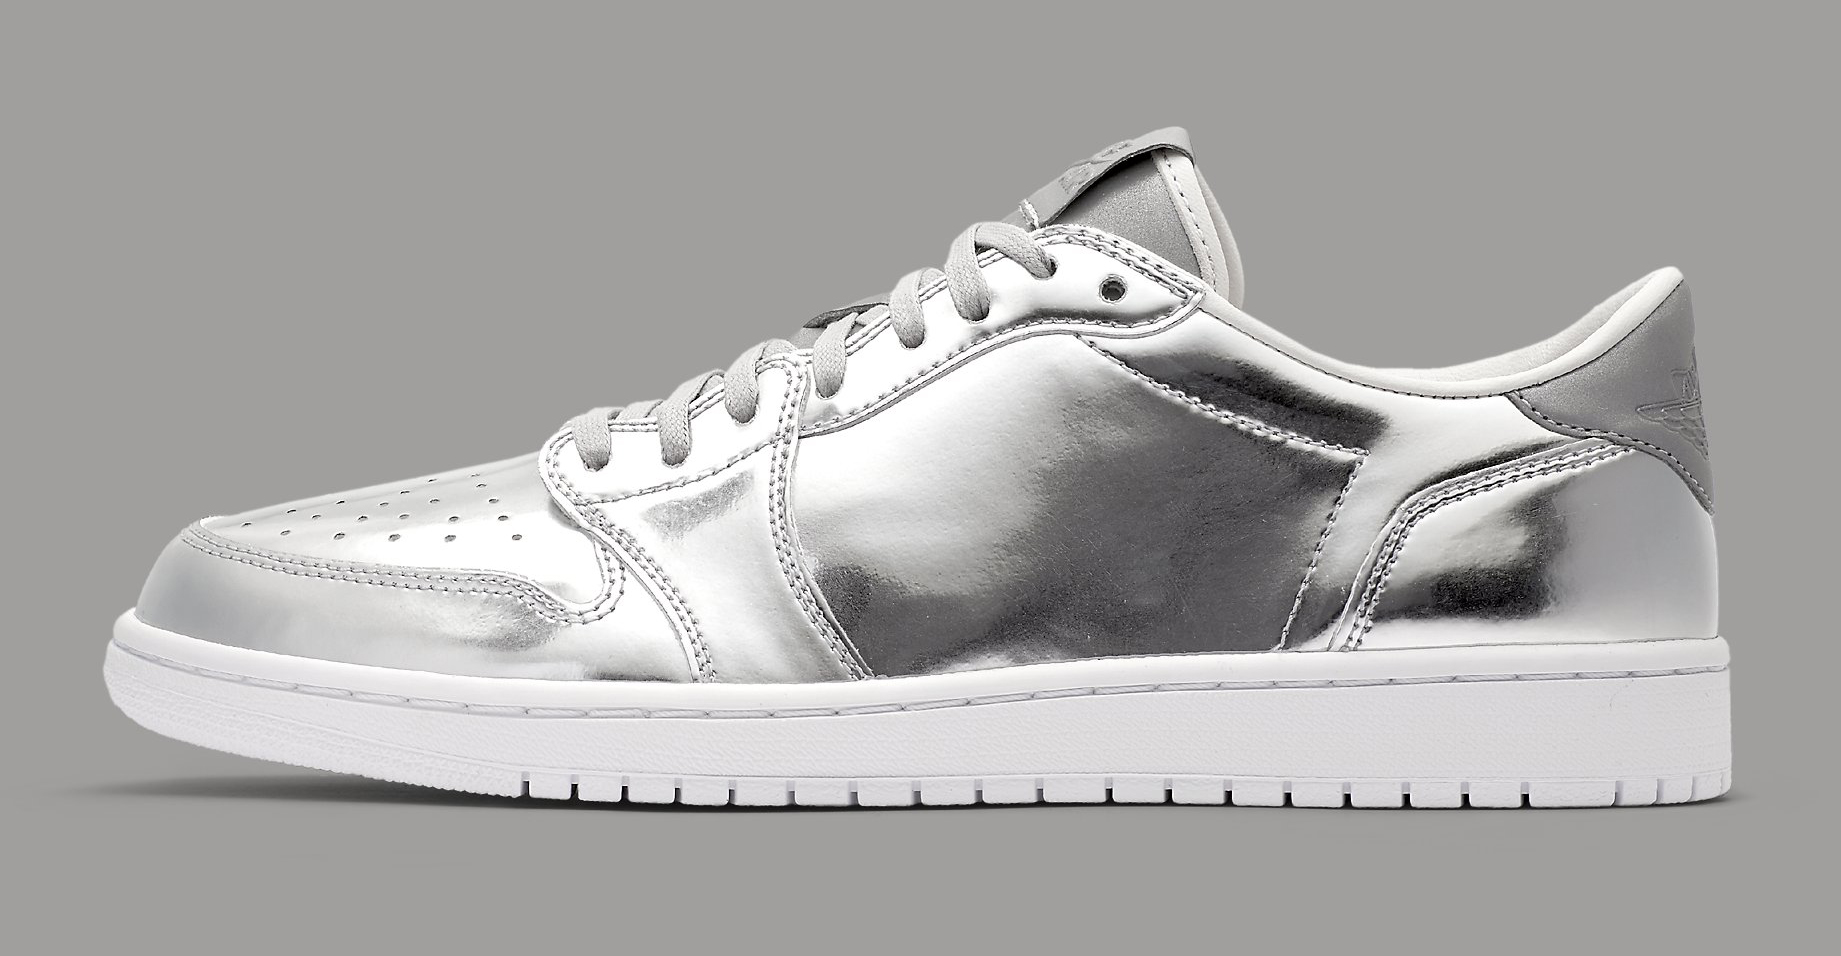 Silver Air Jordan 1 Low 852549-003 Profile